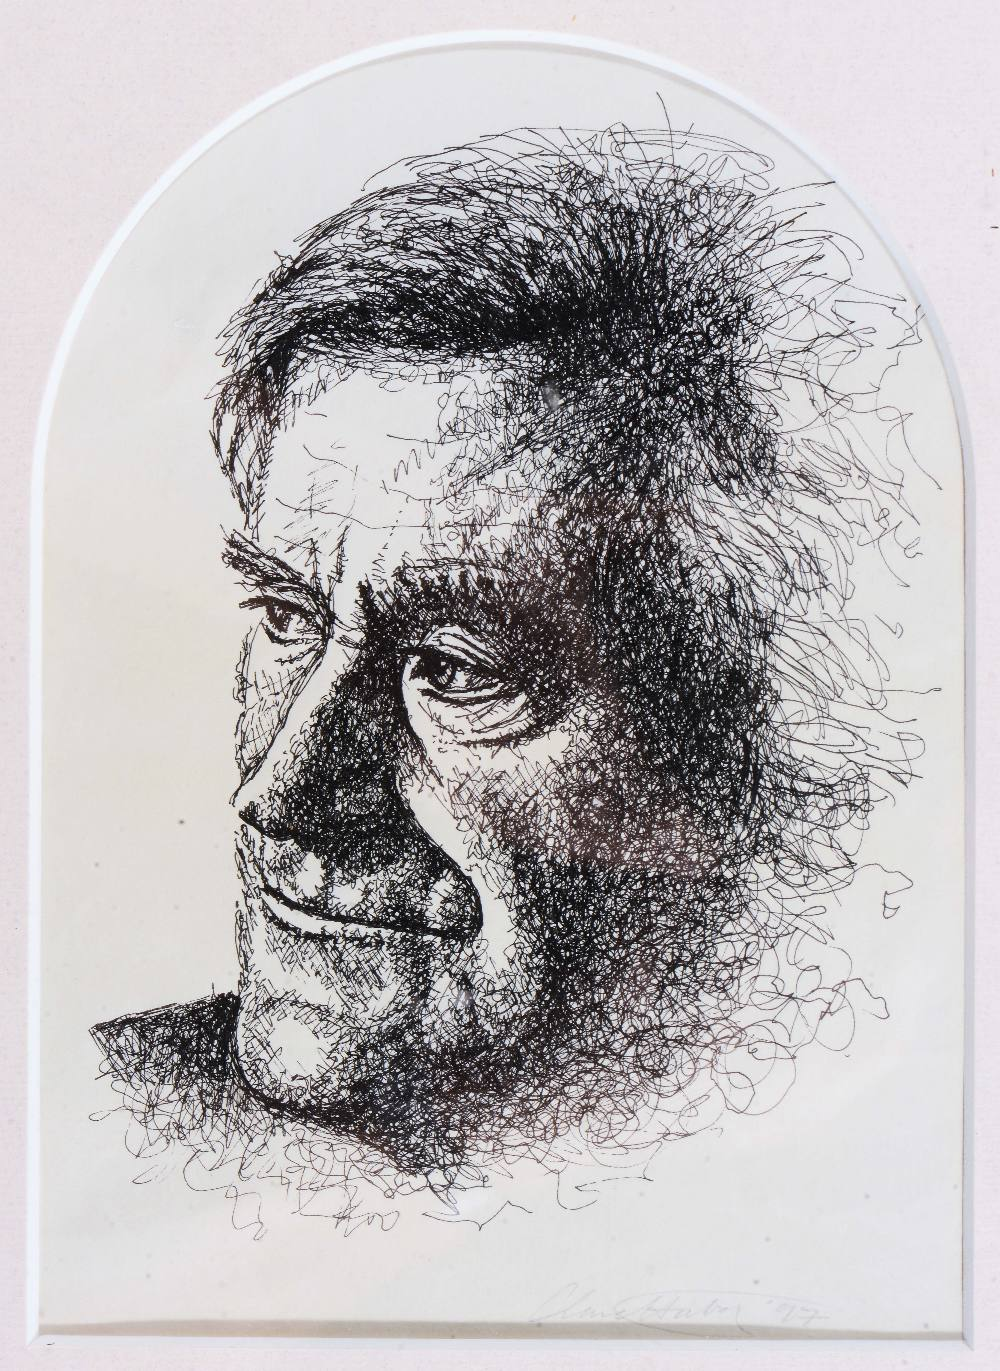 Lot 354 - CLARE HUBER Head and shoulder portrait of the poet laureate Ted Hughes, signed and dated '97, pen